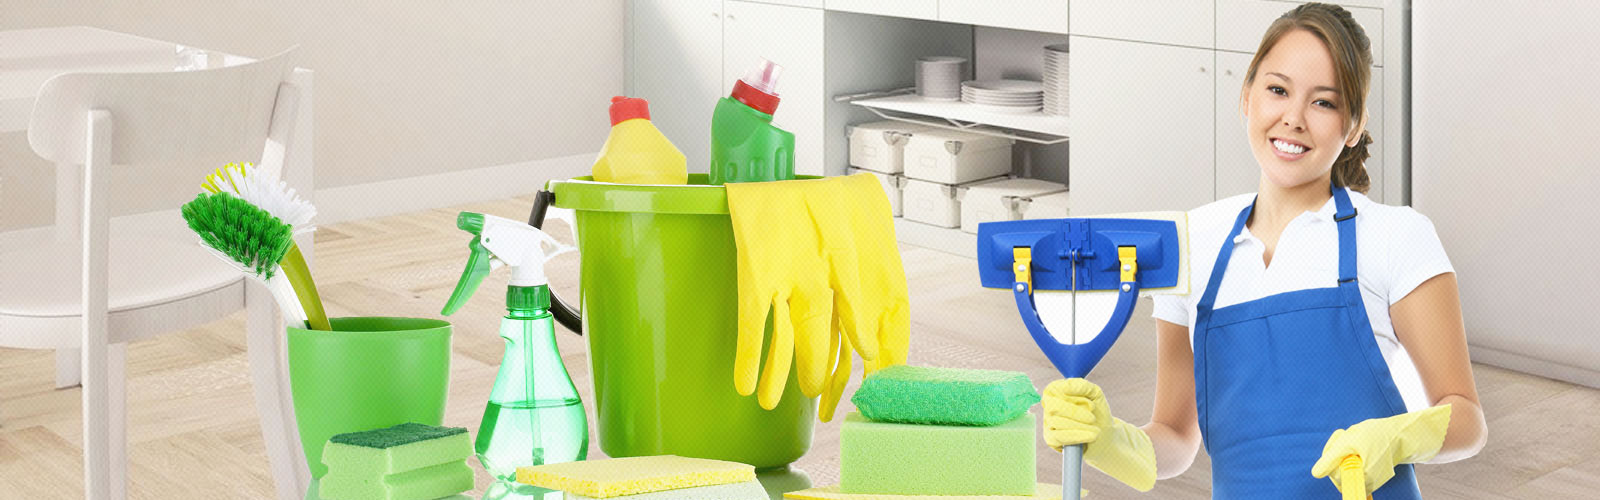 End of Lease Cleaning in Adelaide